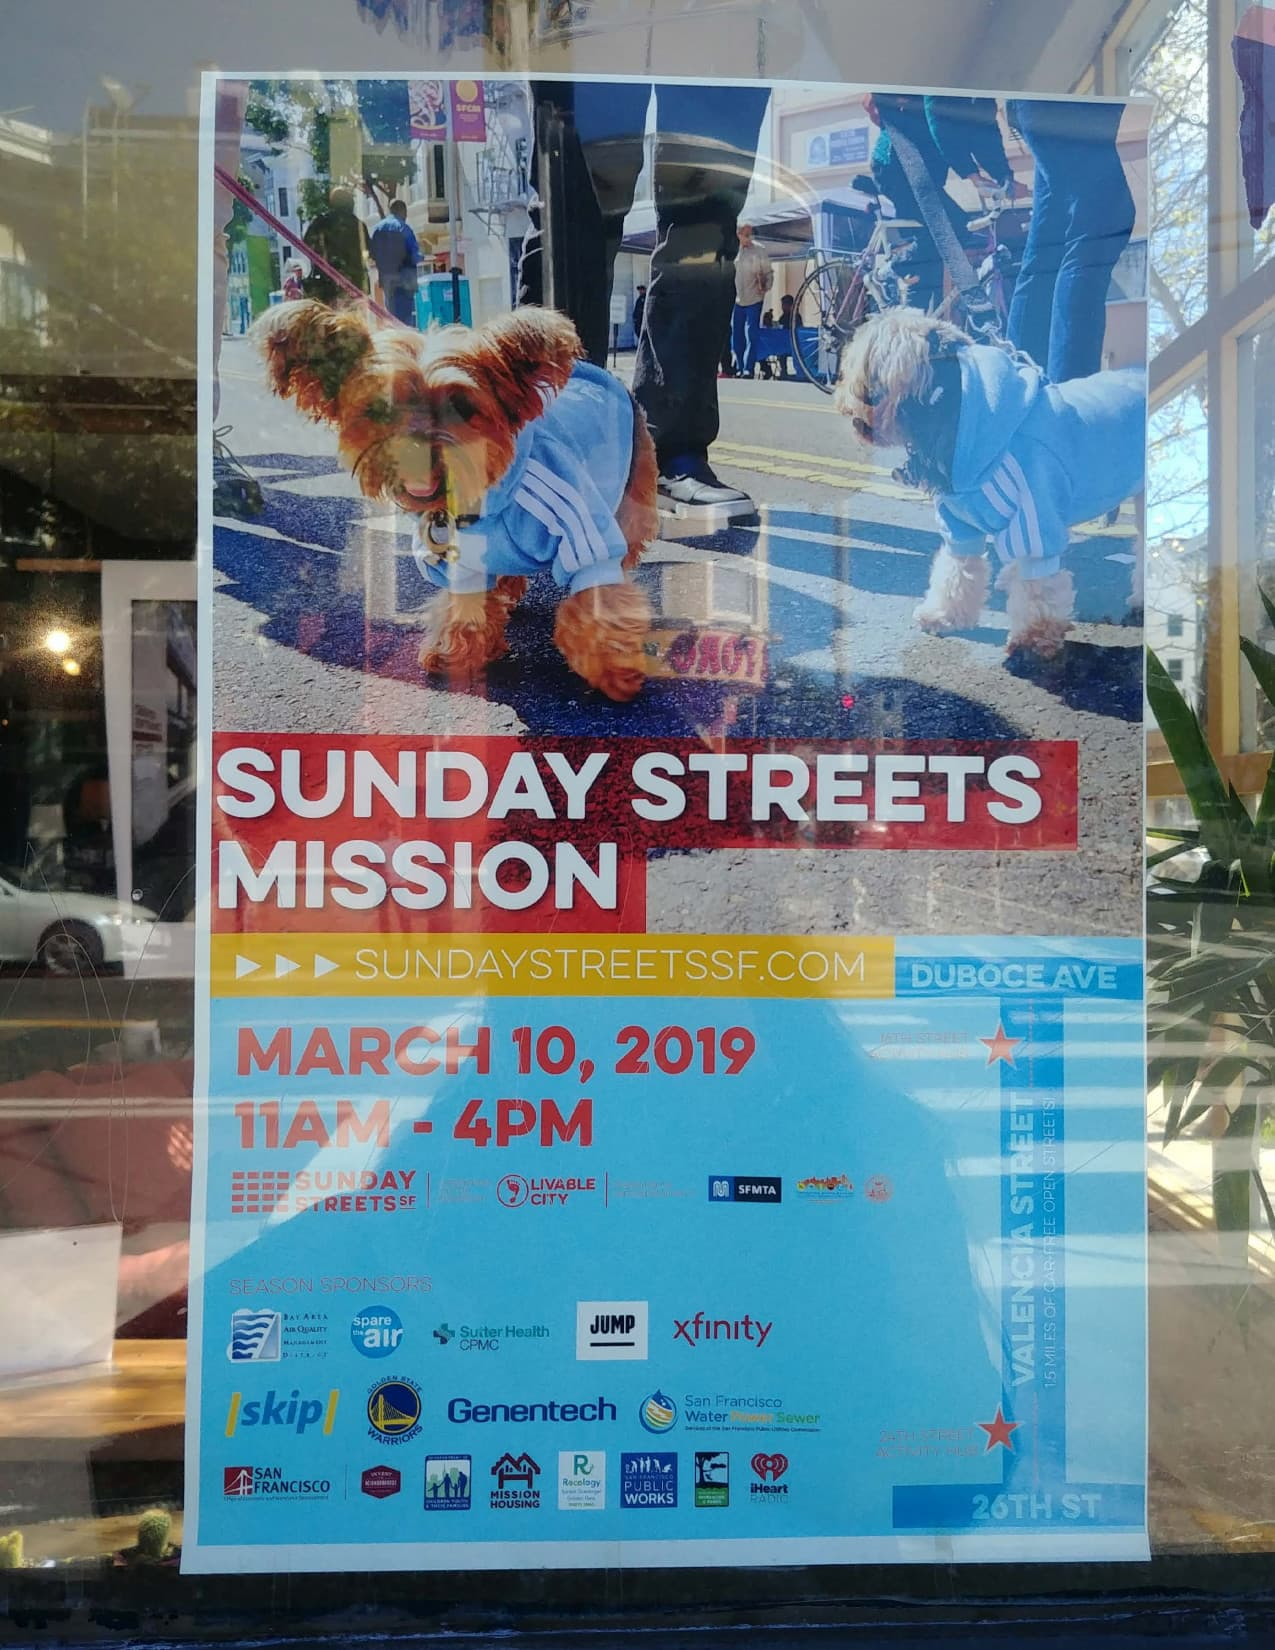 Sunday Streets San Francisco: templates for posters, flyers and stamp collection